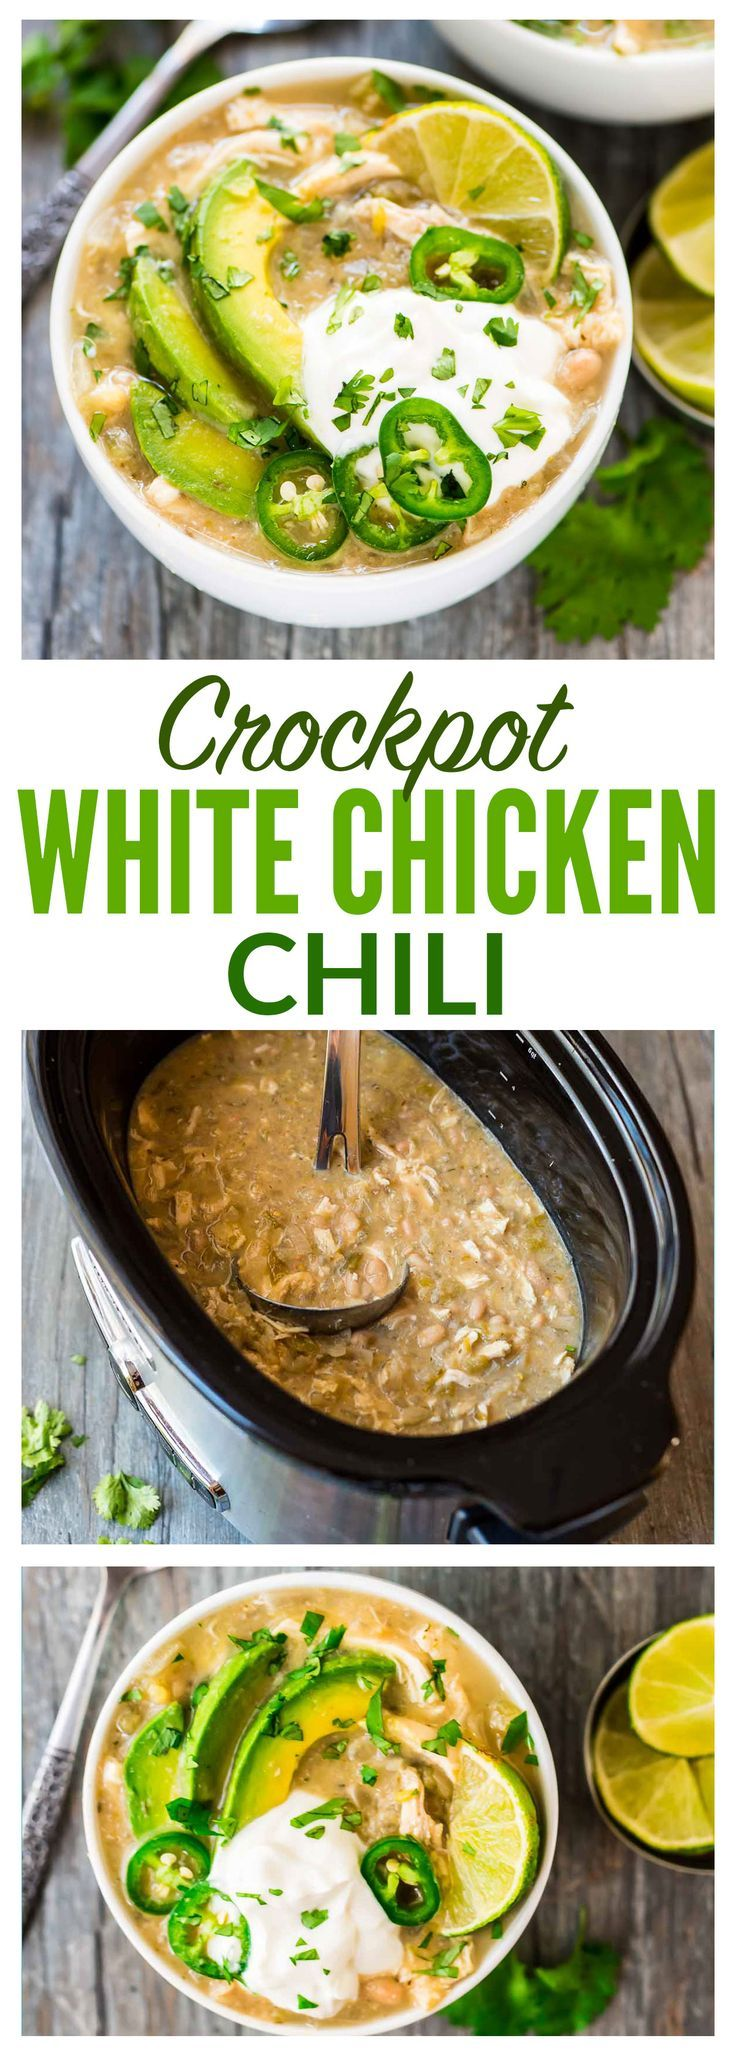 Crockpot White Chicken Chili. Not too spicy with TONS of flavor. Healthy, easy recipe and your slow cooker does all the work! Recipe at wellplated.com | @wellplated